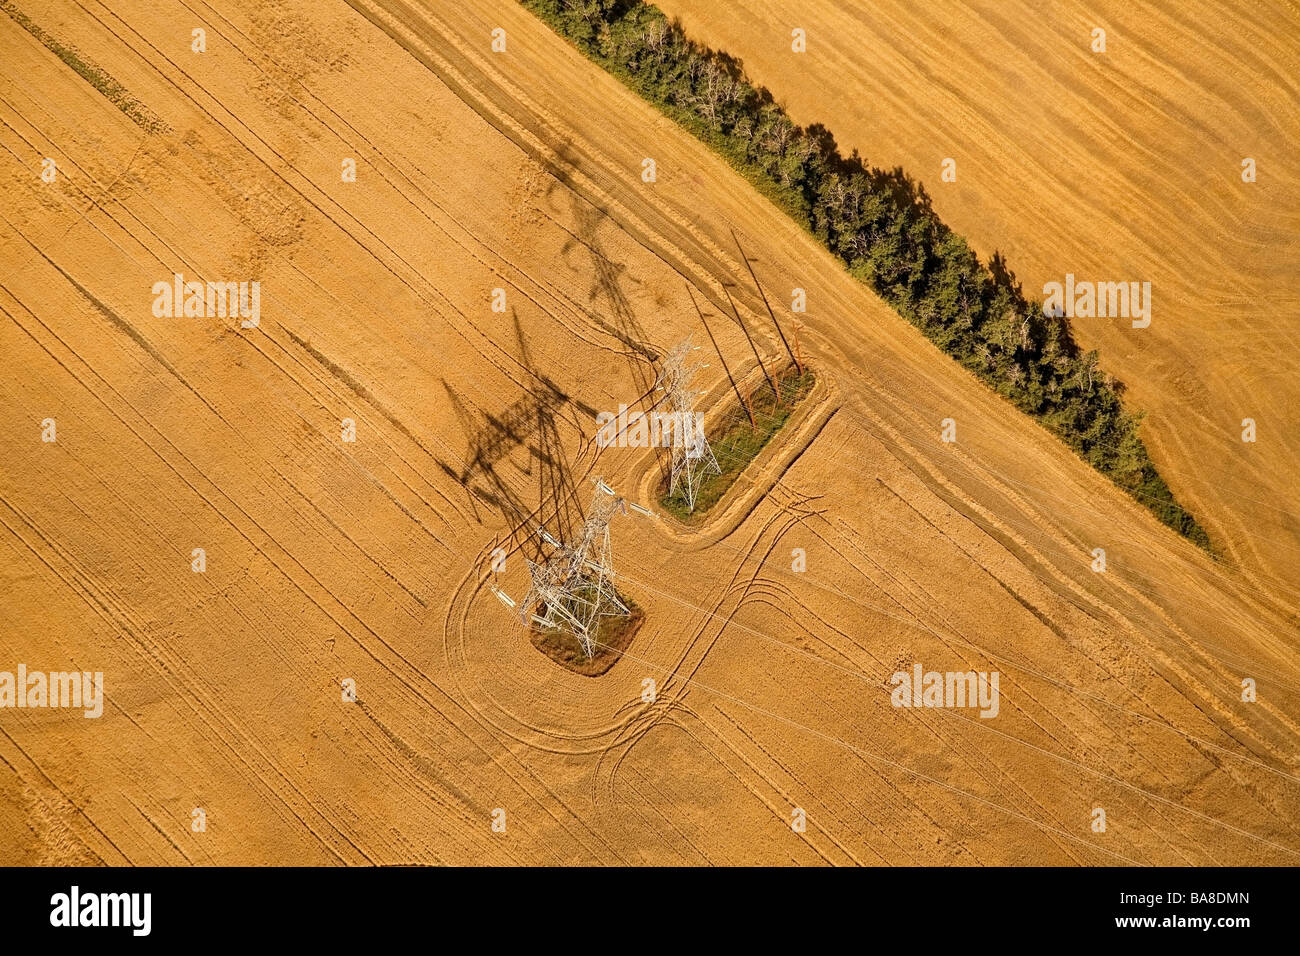 Electricity pylons in field - Stock Image